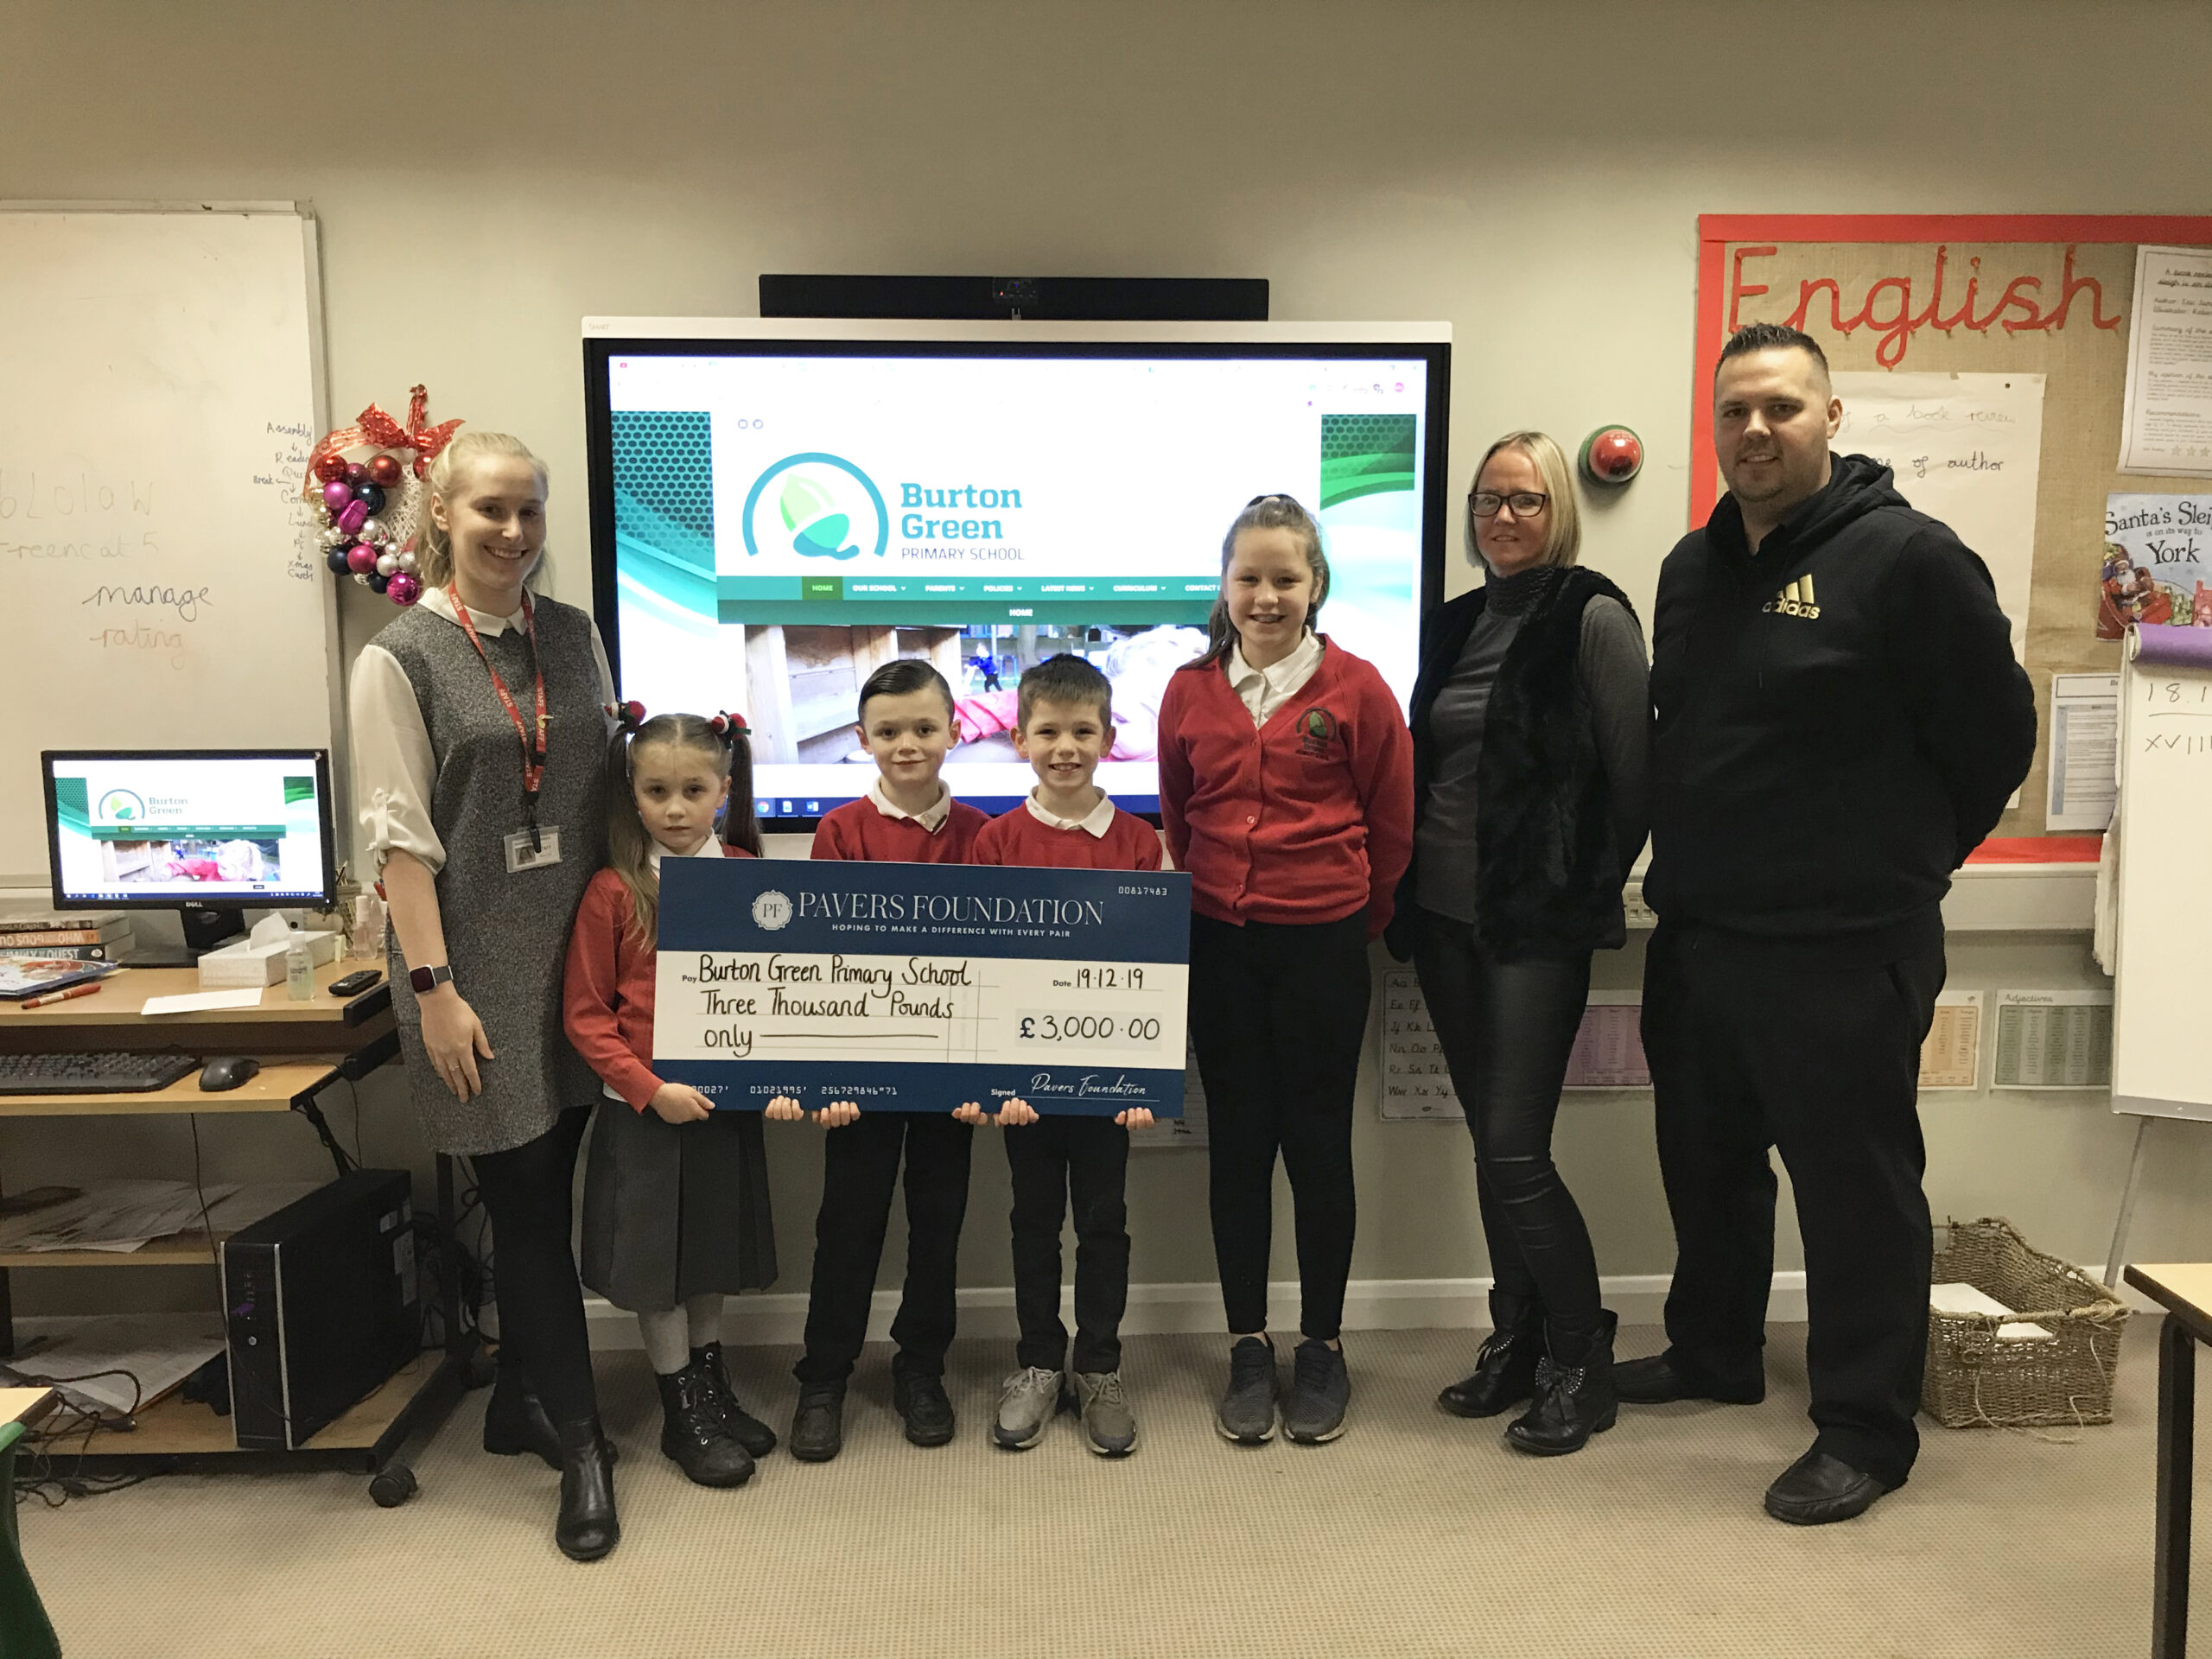 Ms Tutill, teacher at Burton Green Primary School and pupils from her class, receiving the donation presentation cheque.